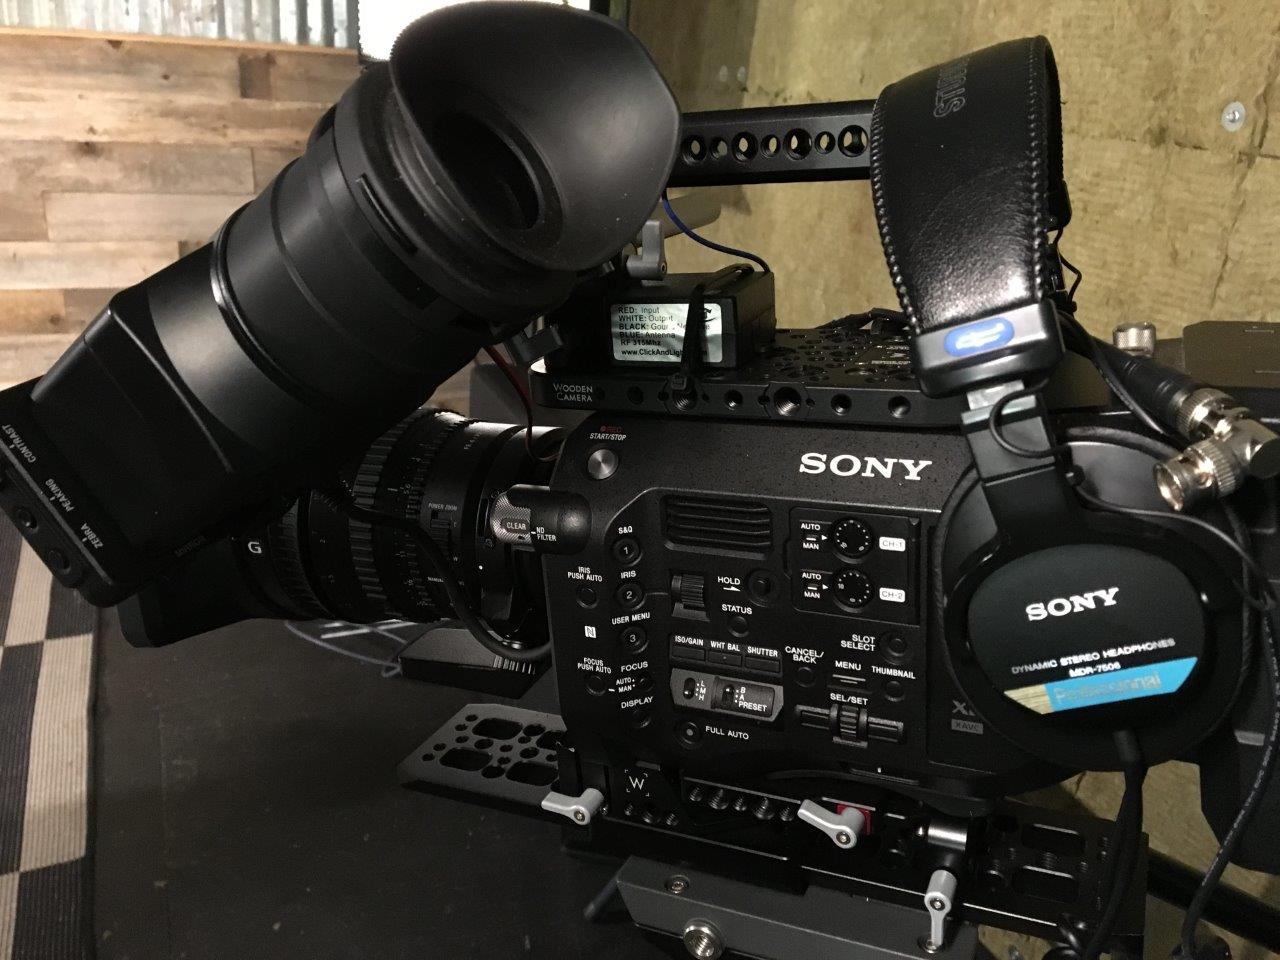 Sony's FS7 camera and MDR-7506 headphones in use at Lake Pointe Church